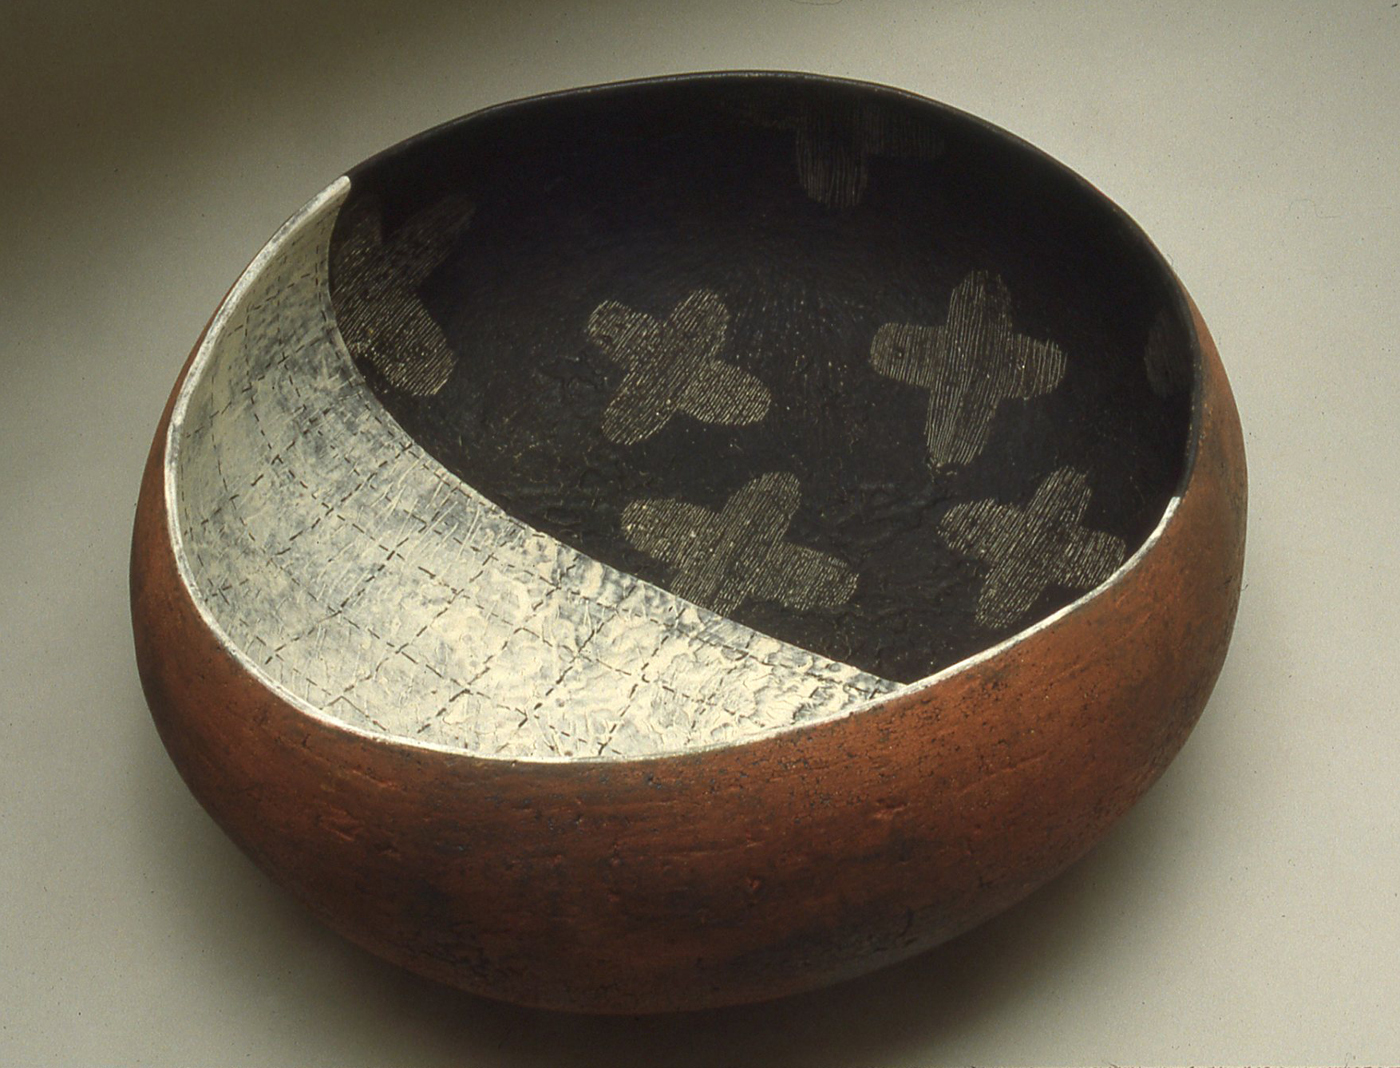 Untitled bowl, 1996